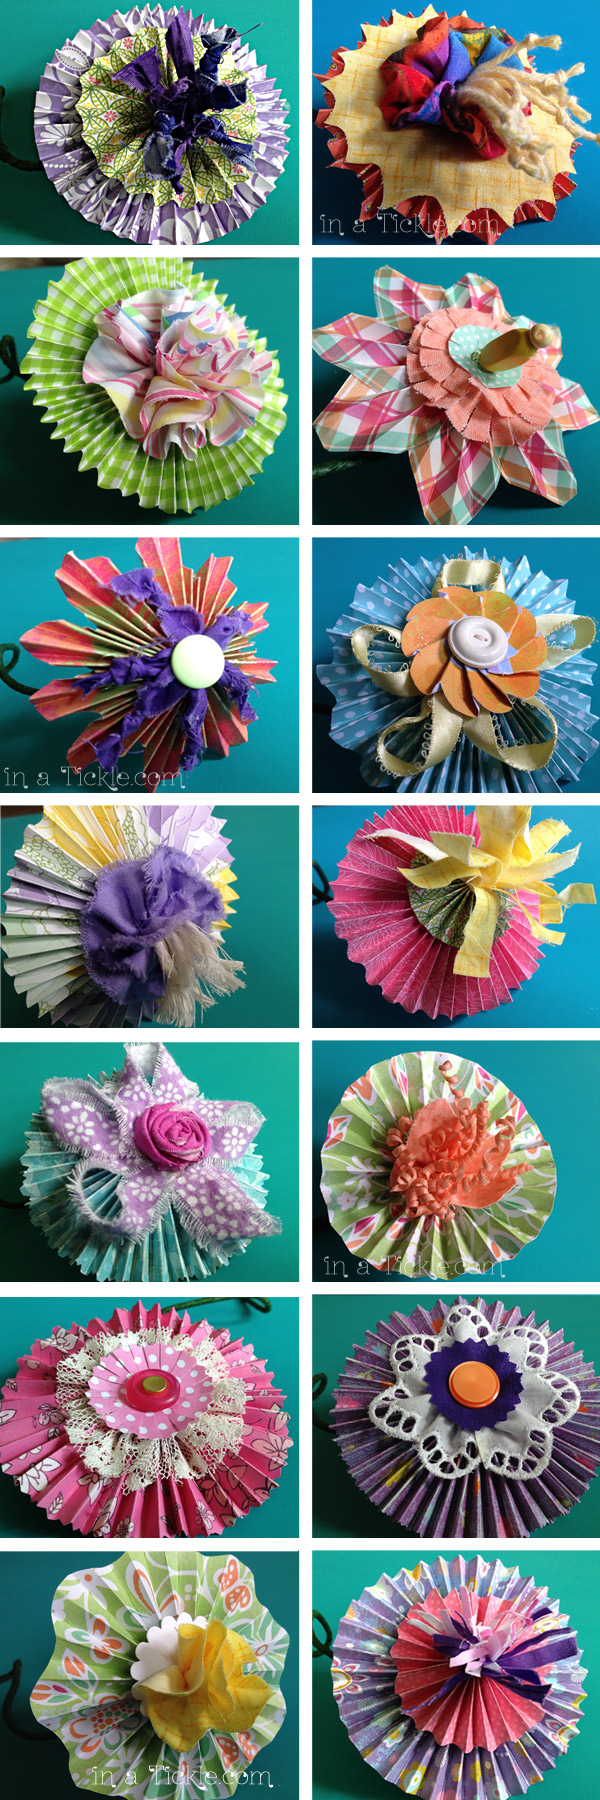 Whimsical Flowers From Paper And Fabric In A Tickle